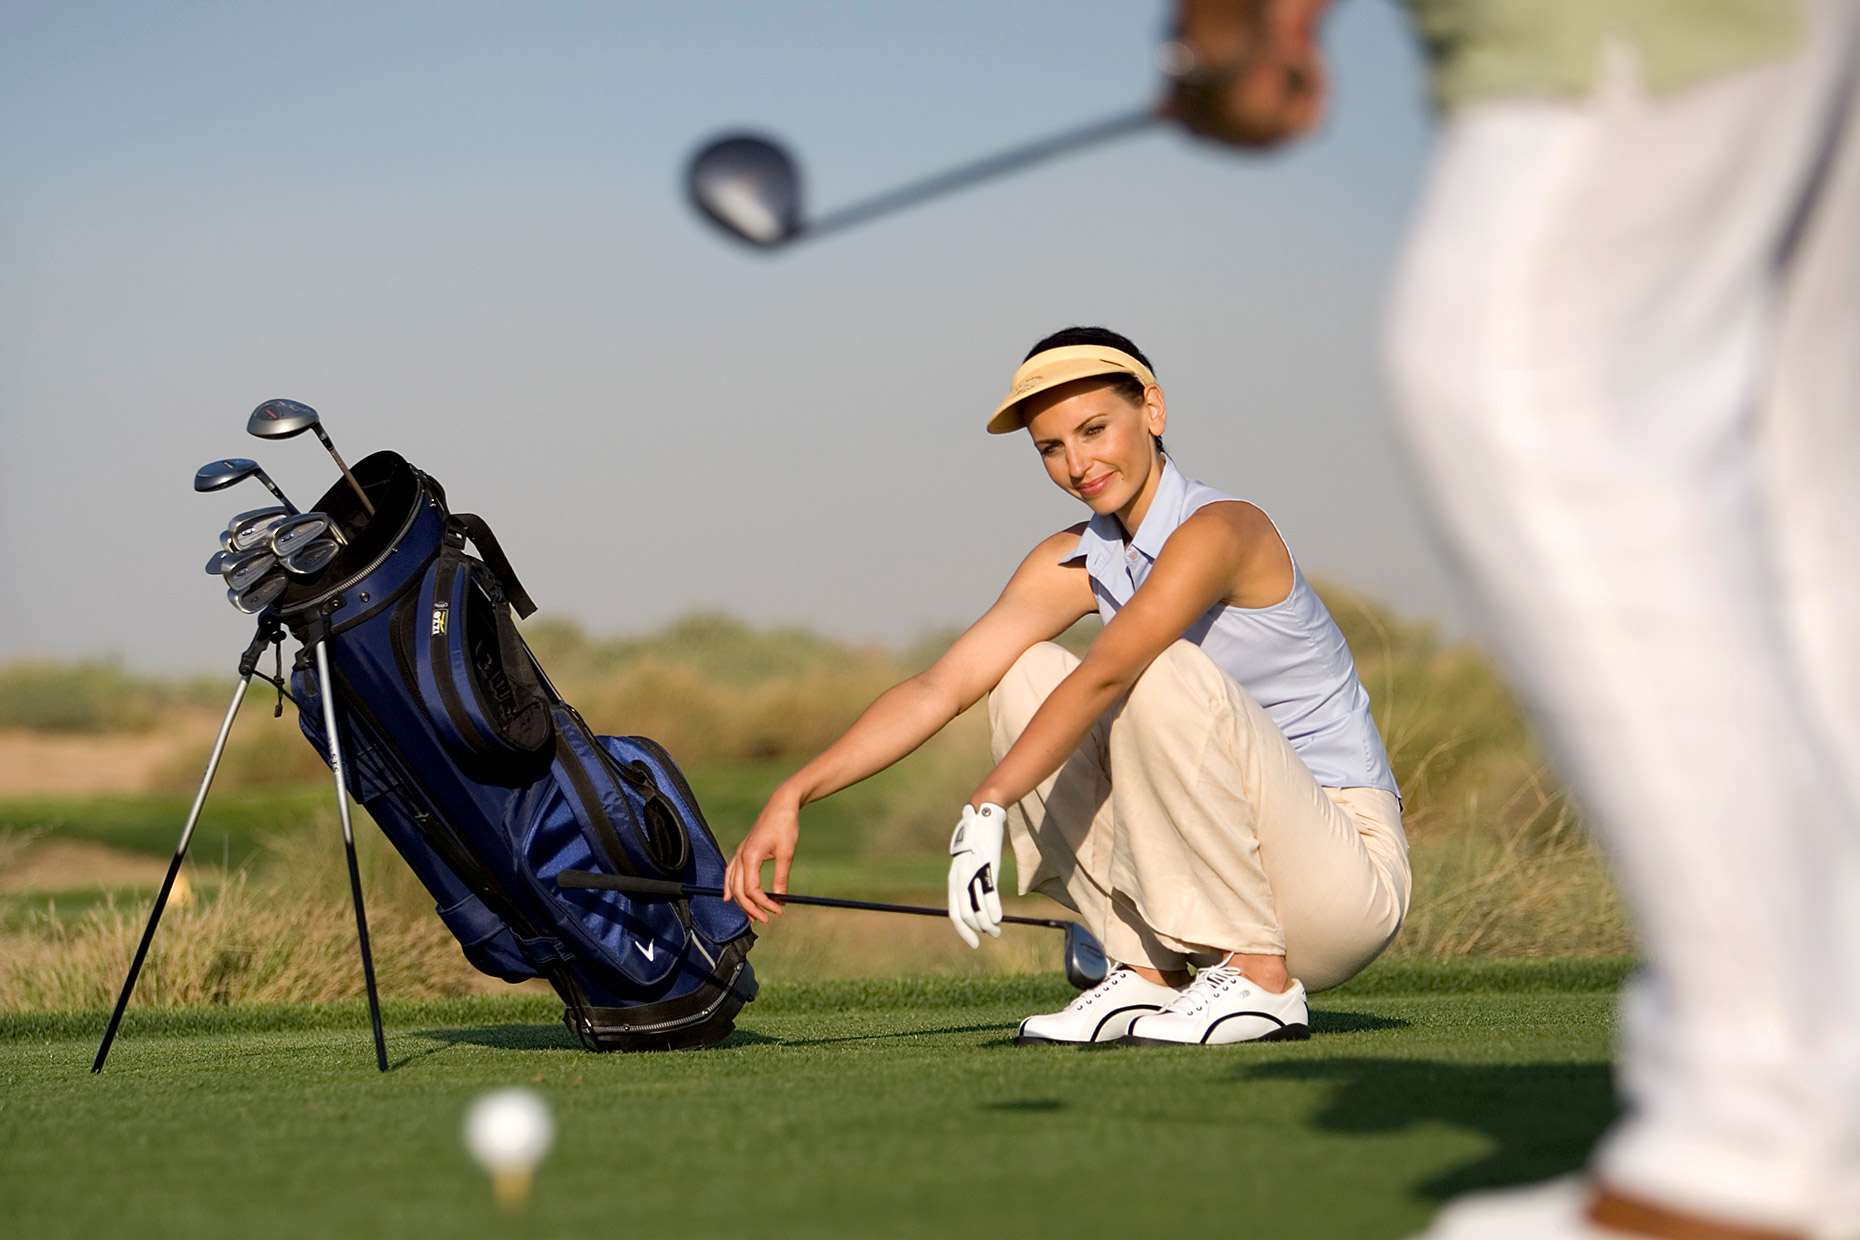 woman-on-the-golf-course